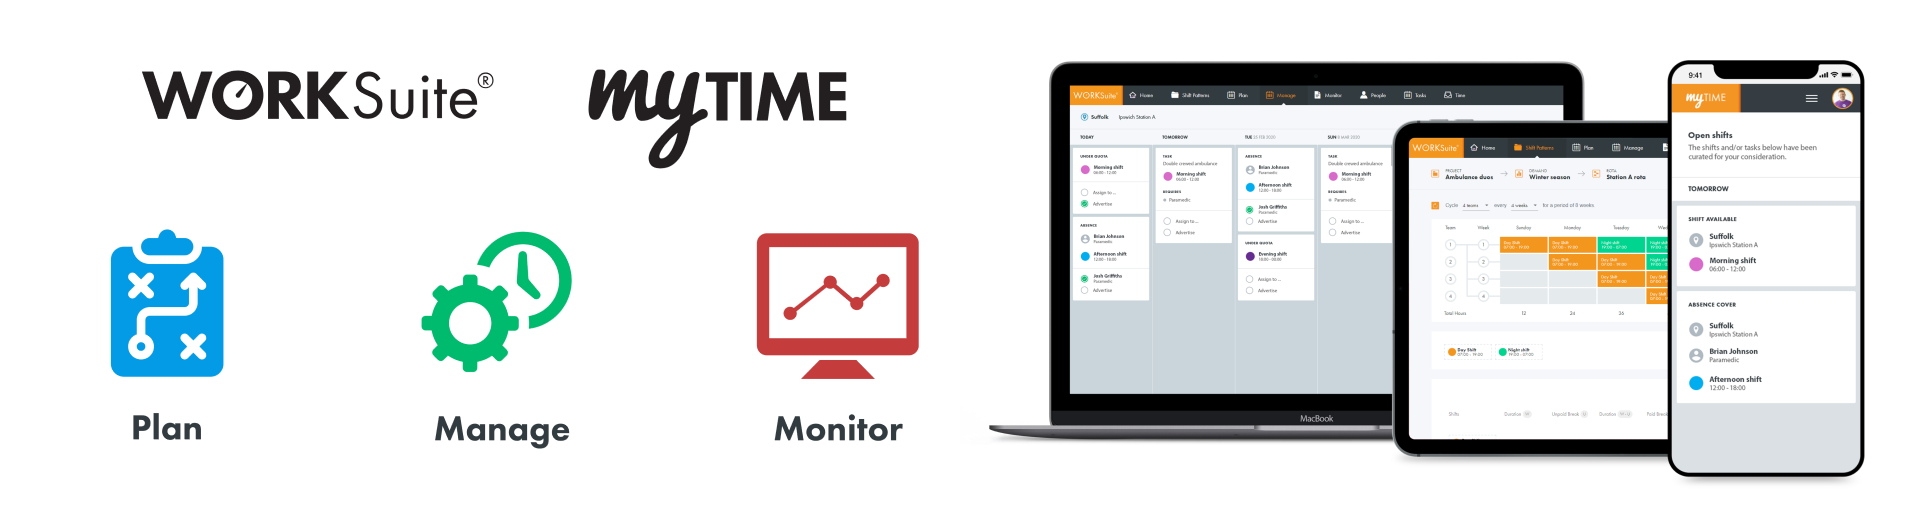 Cloud workforce management software for shift patterns, scheduling, rotas and rosters